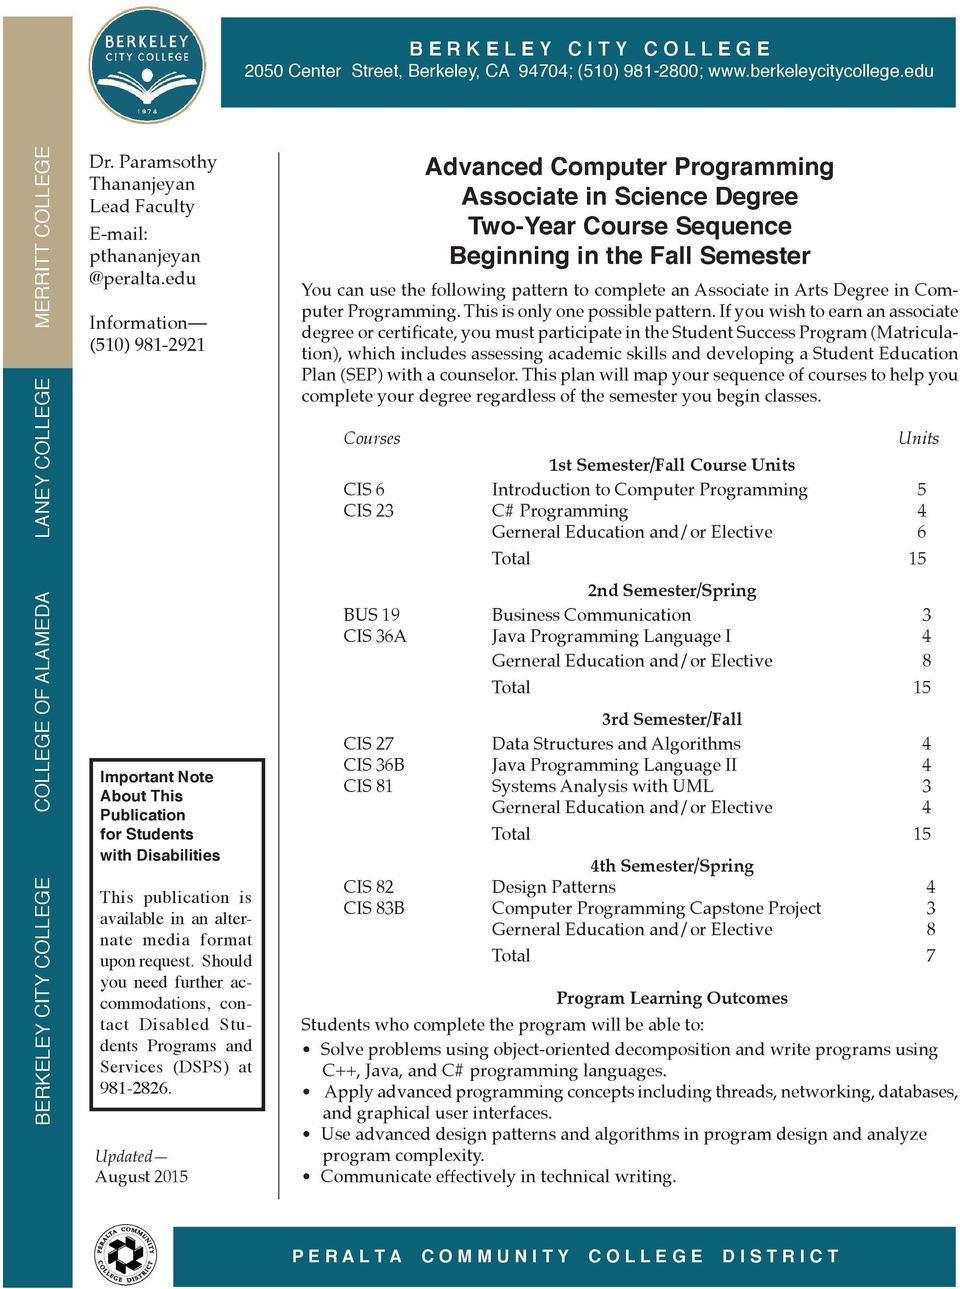 If you wish to earn an associate degree or certificate, you must participate in the Student Success Program (Matriculation), which includes assessing academic skills and developing a Student